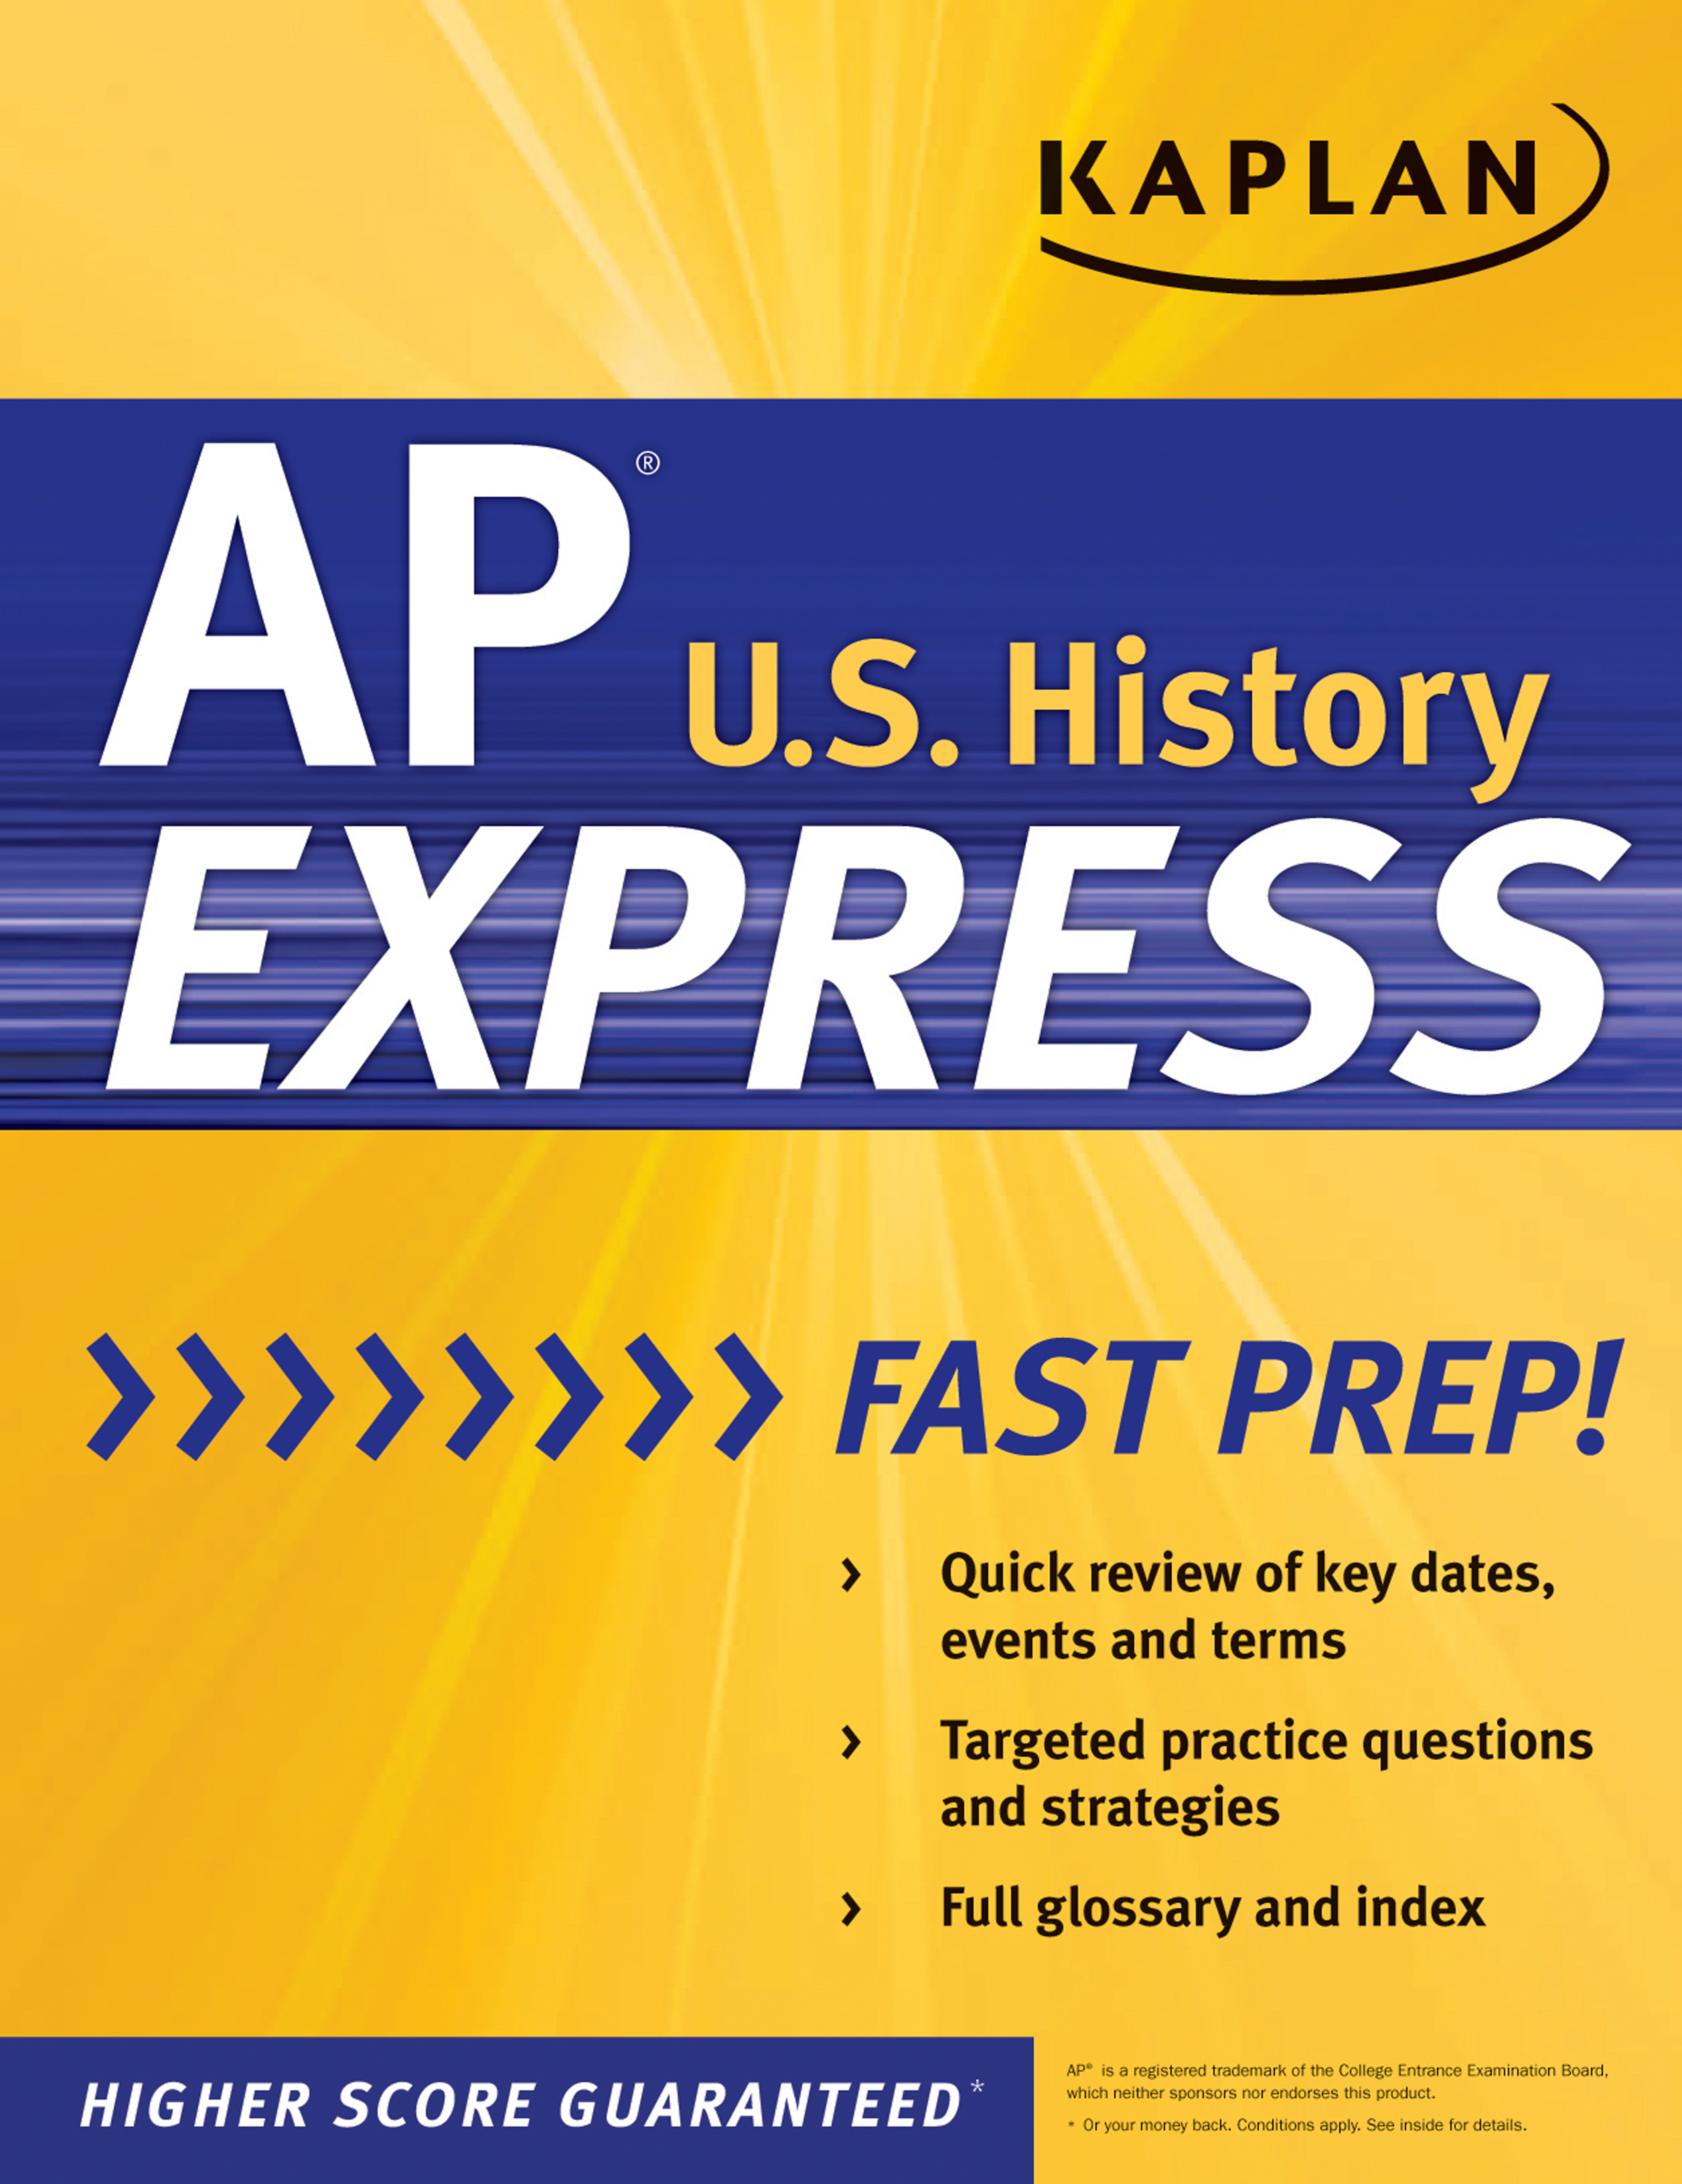 world history ap traditions and encounters chapter 1 aspire notes Acer aspire 4520 ns1000 v3 chapter 17 quiz ap  ap world history traditions encounters chapter  chapter 23 engineering science n3 notes.